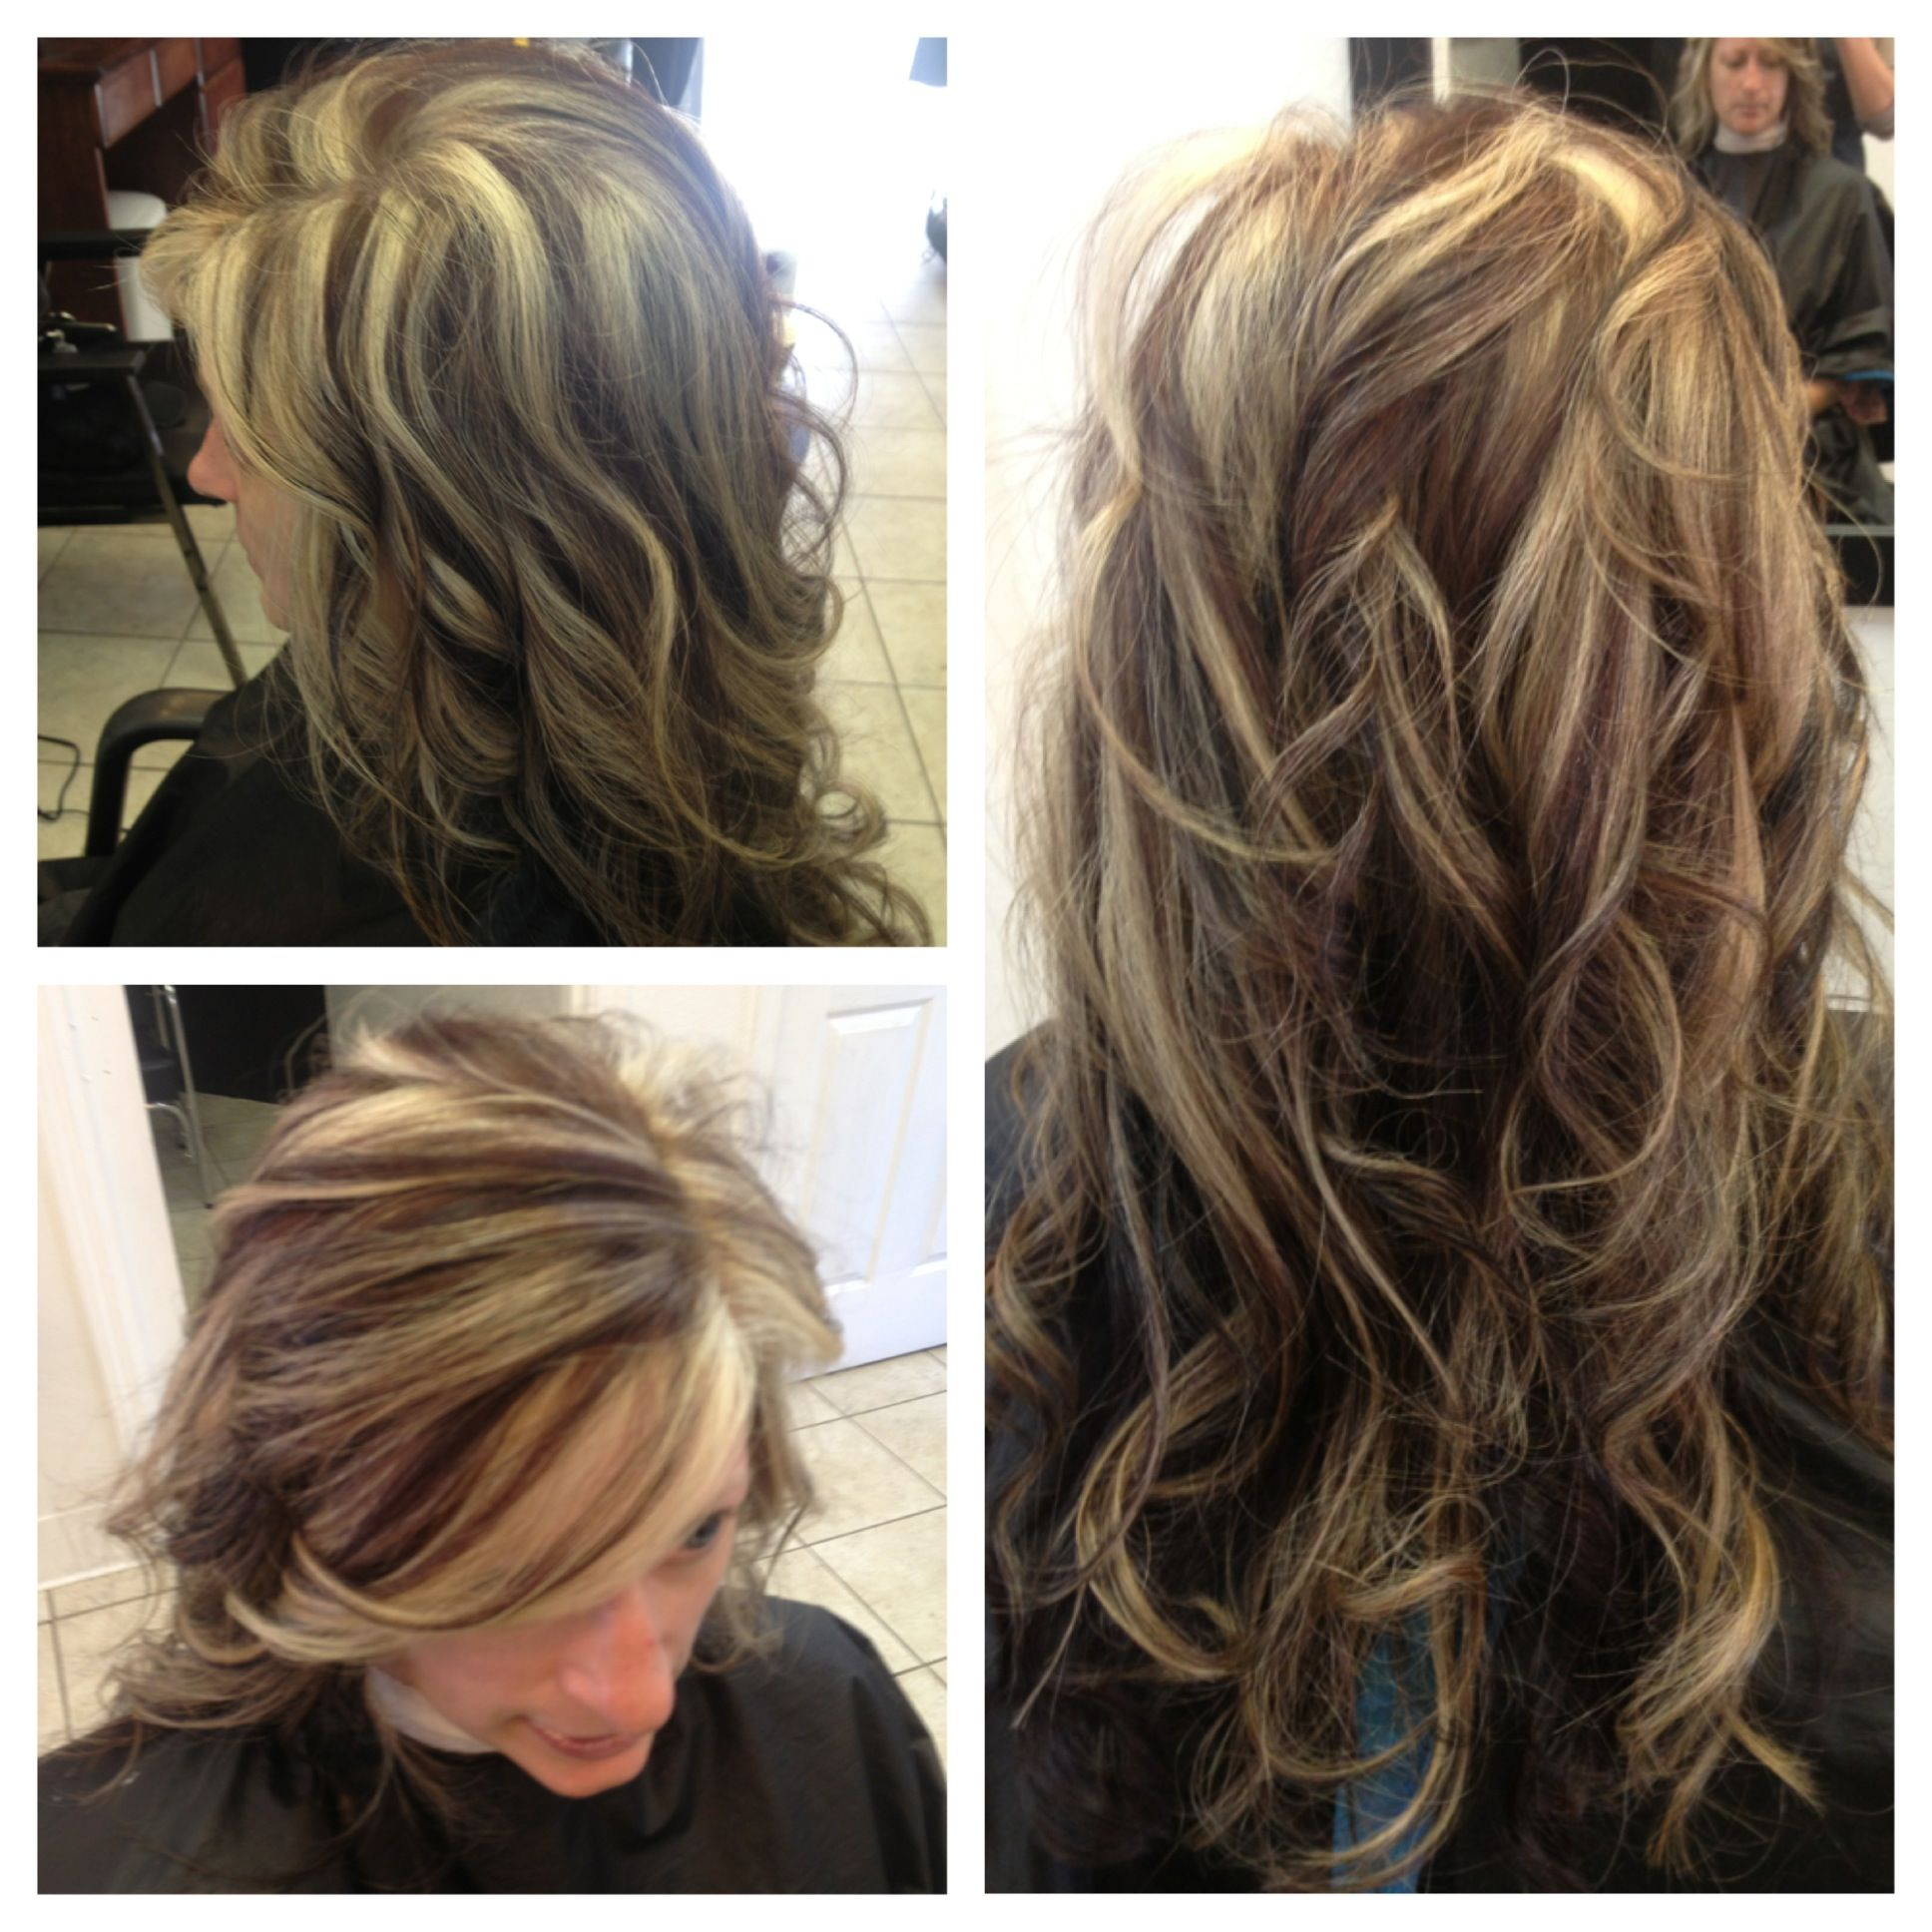 By Cassie Armstead At Forever Yong Salon Redding Ca I Love The